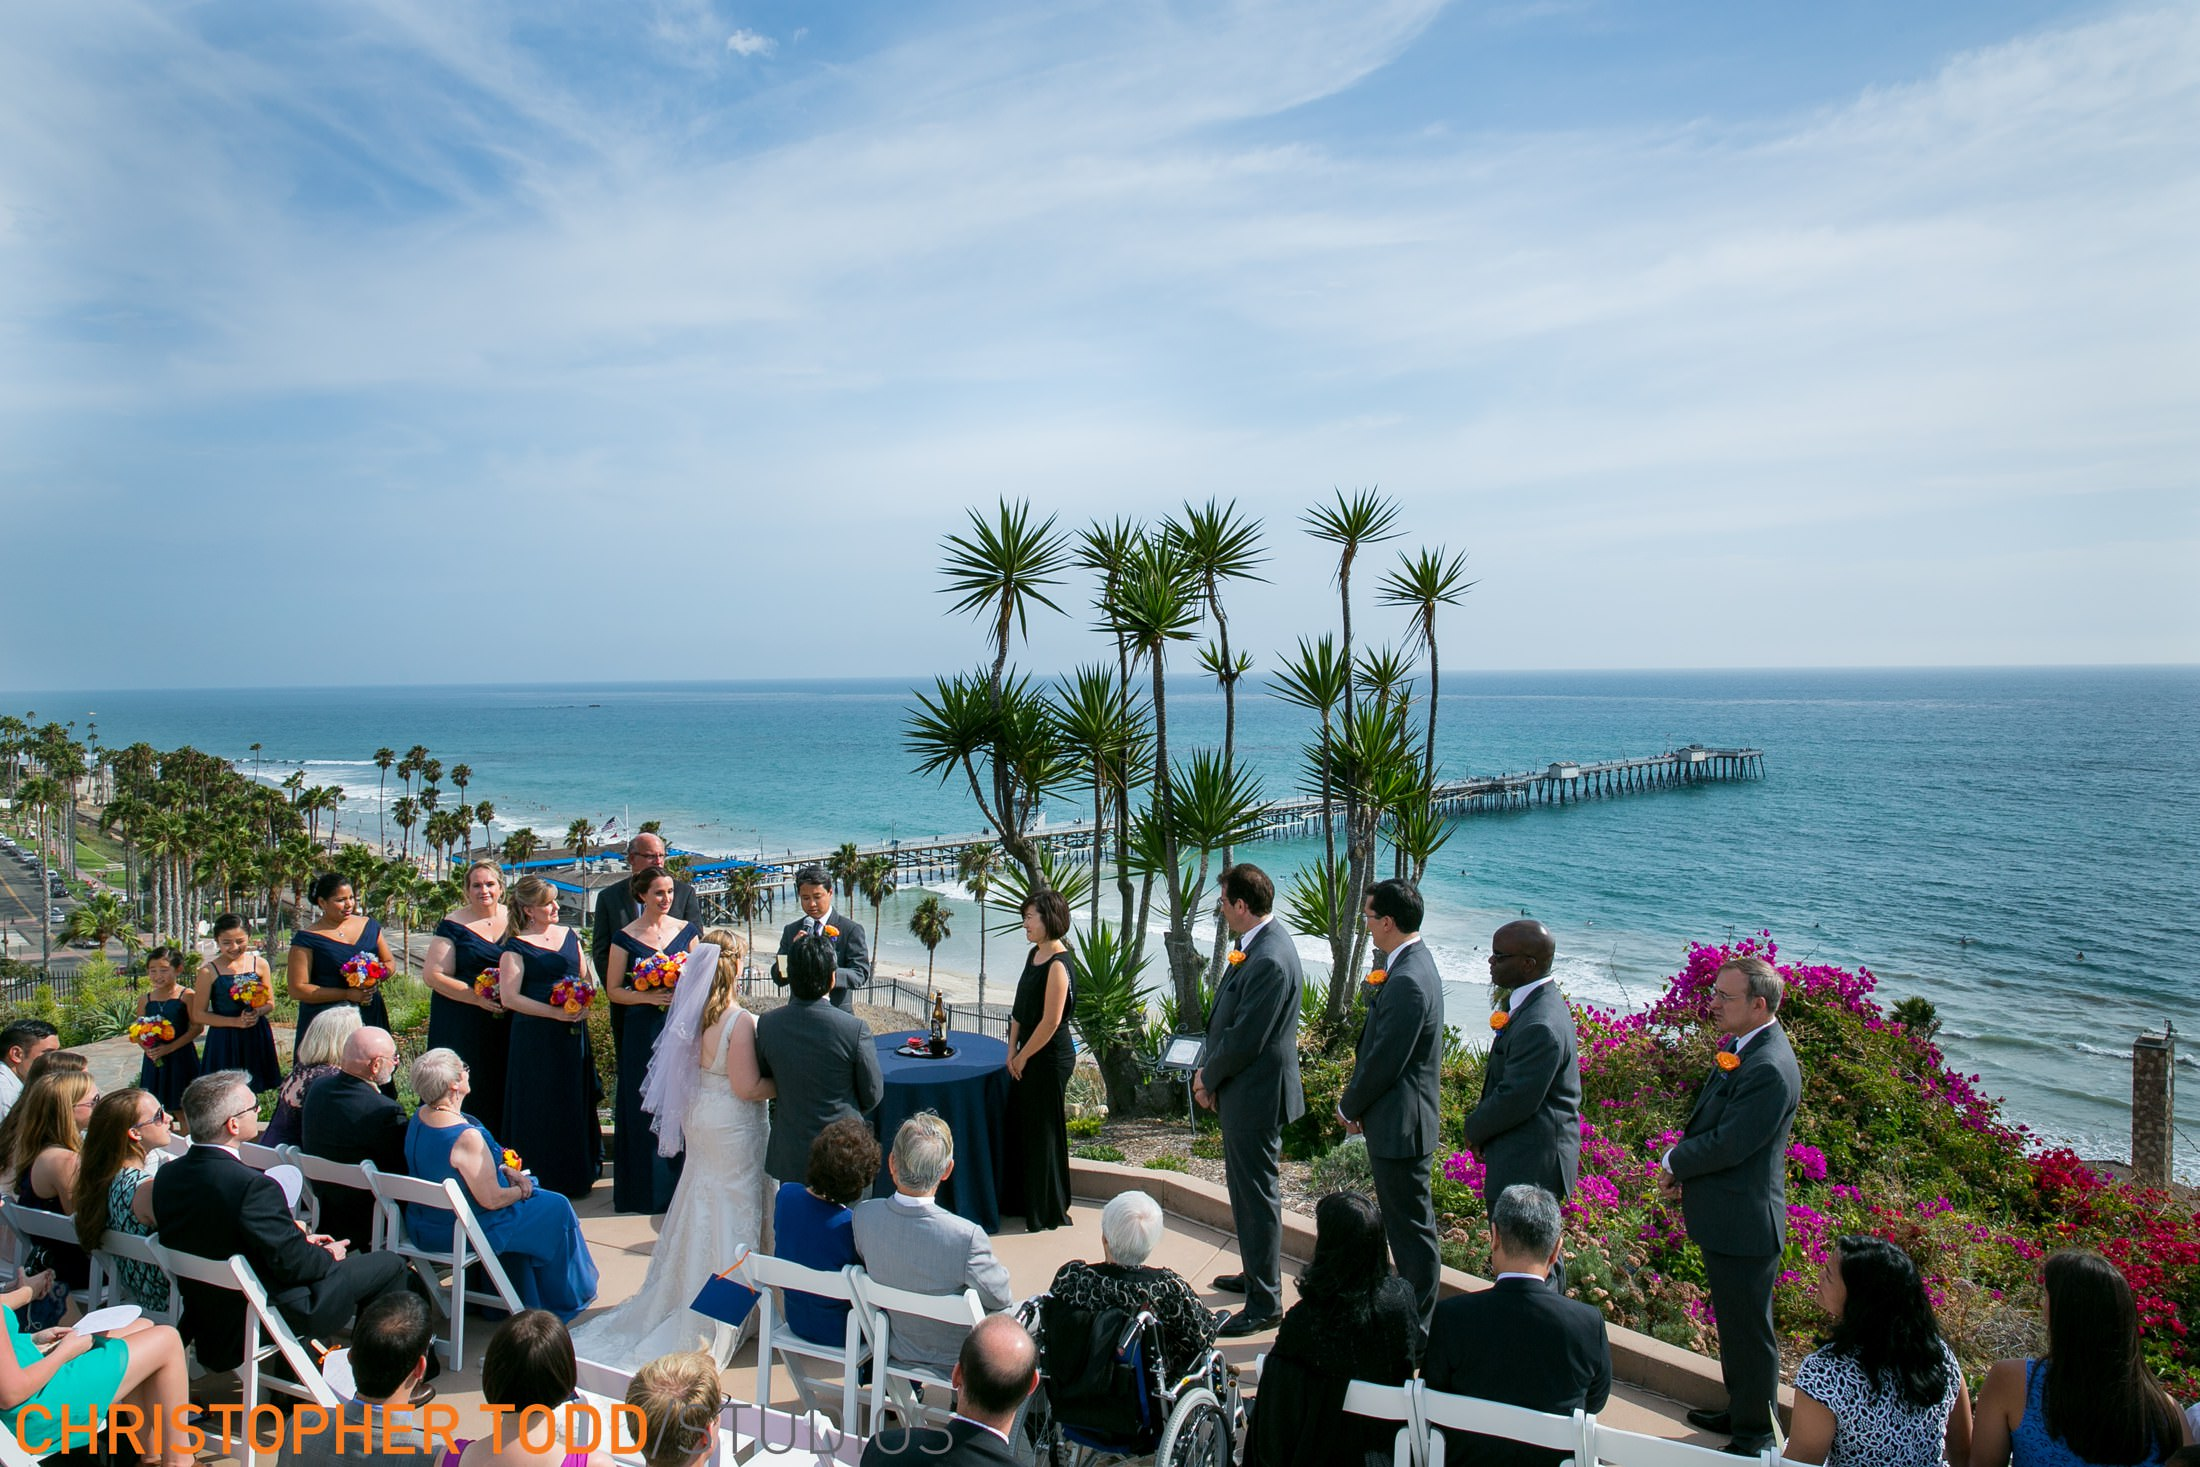 Beautiful outdoor wedding ceremony at Casa Romantica in Orange County overlooking the ocean and San Clemente Pier.